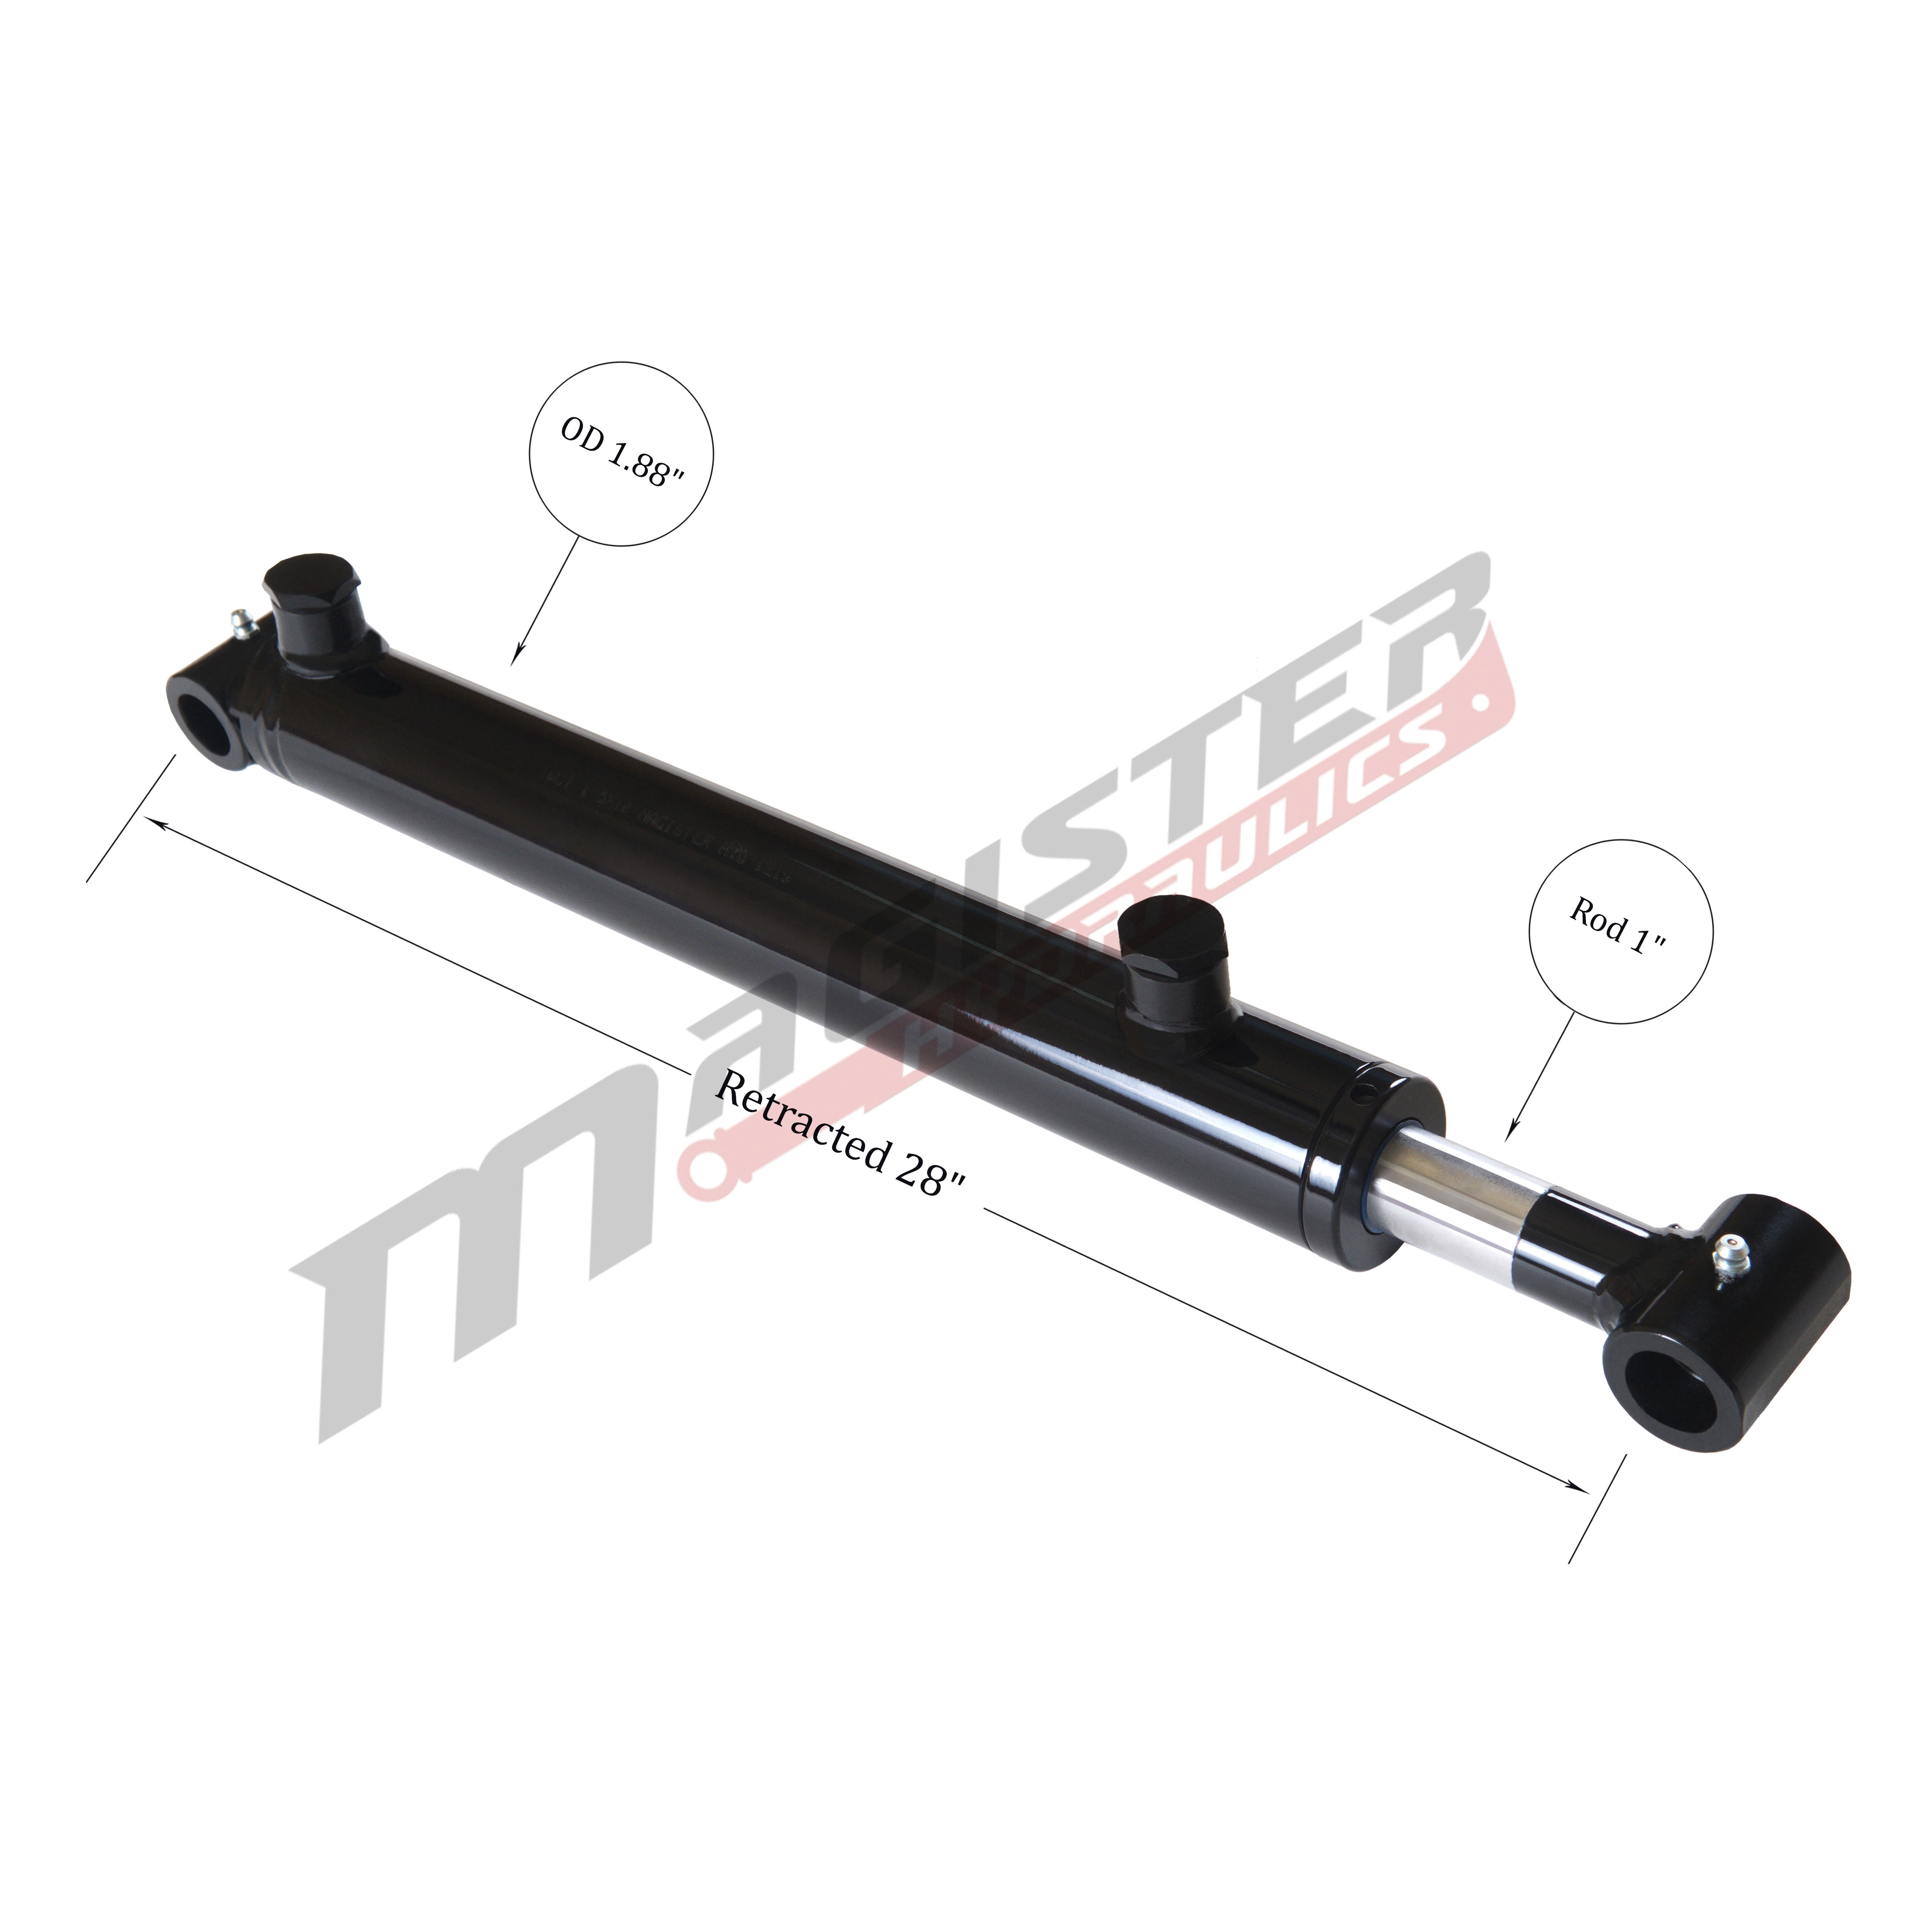 1.5 bore x 20 stroke hydraulic cylinder, welded cross tube double acting cylinder | Magister Hydraulics